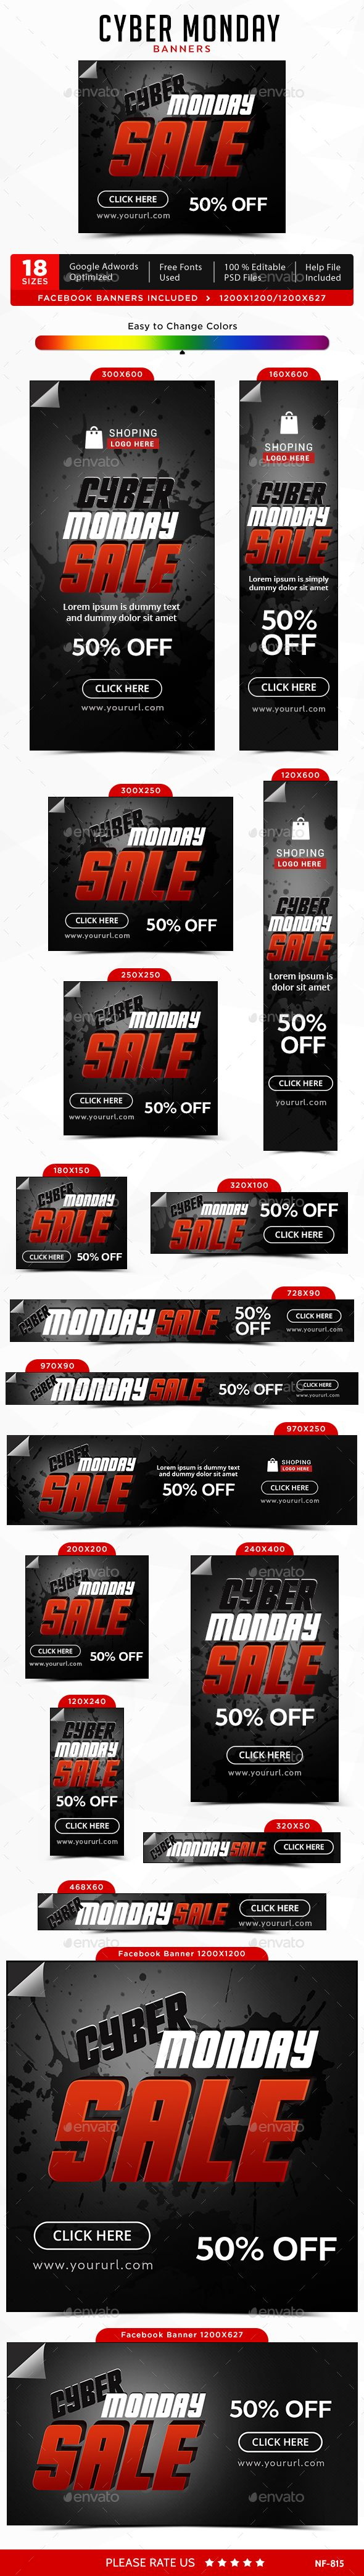 Cyber Monday Banners Template PSD #design #ads Download: http://graphicriver.net/item/cyber-monday-banners/13736881?ref=ksioks